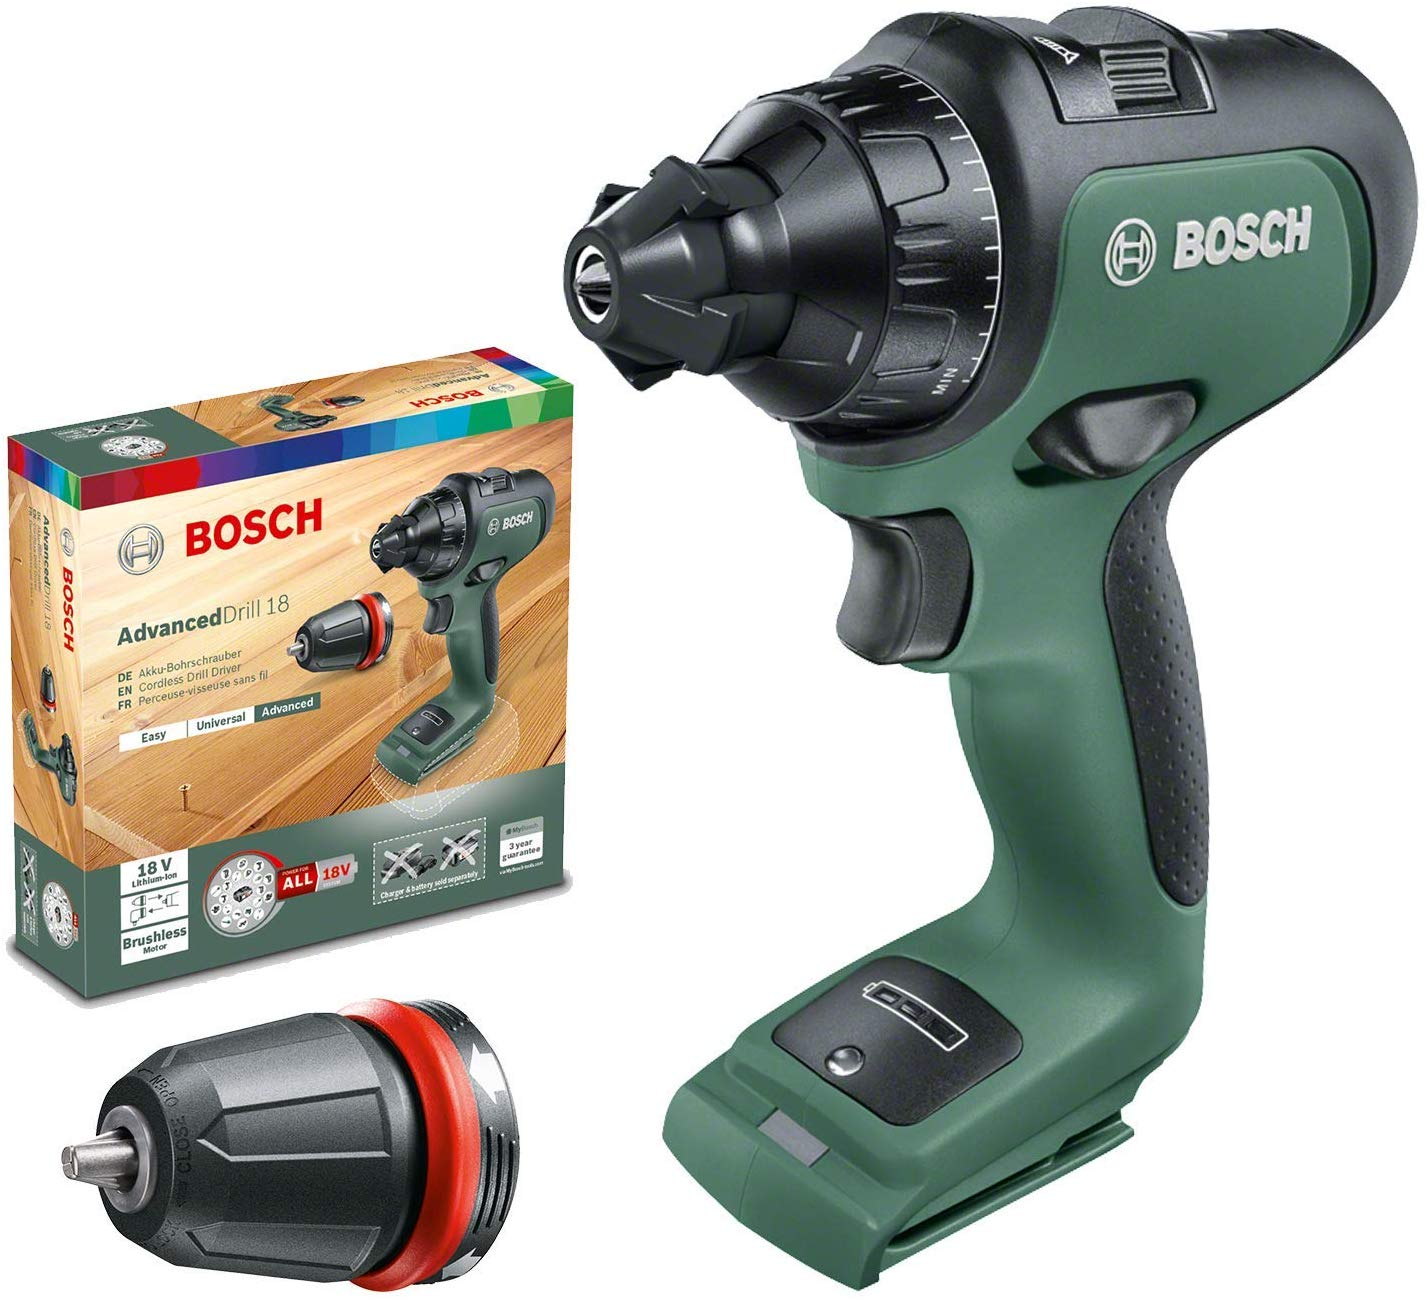 Bosch - AdvancedDrill 18 cordless screwdriver (Battery not included)